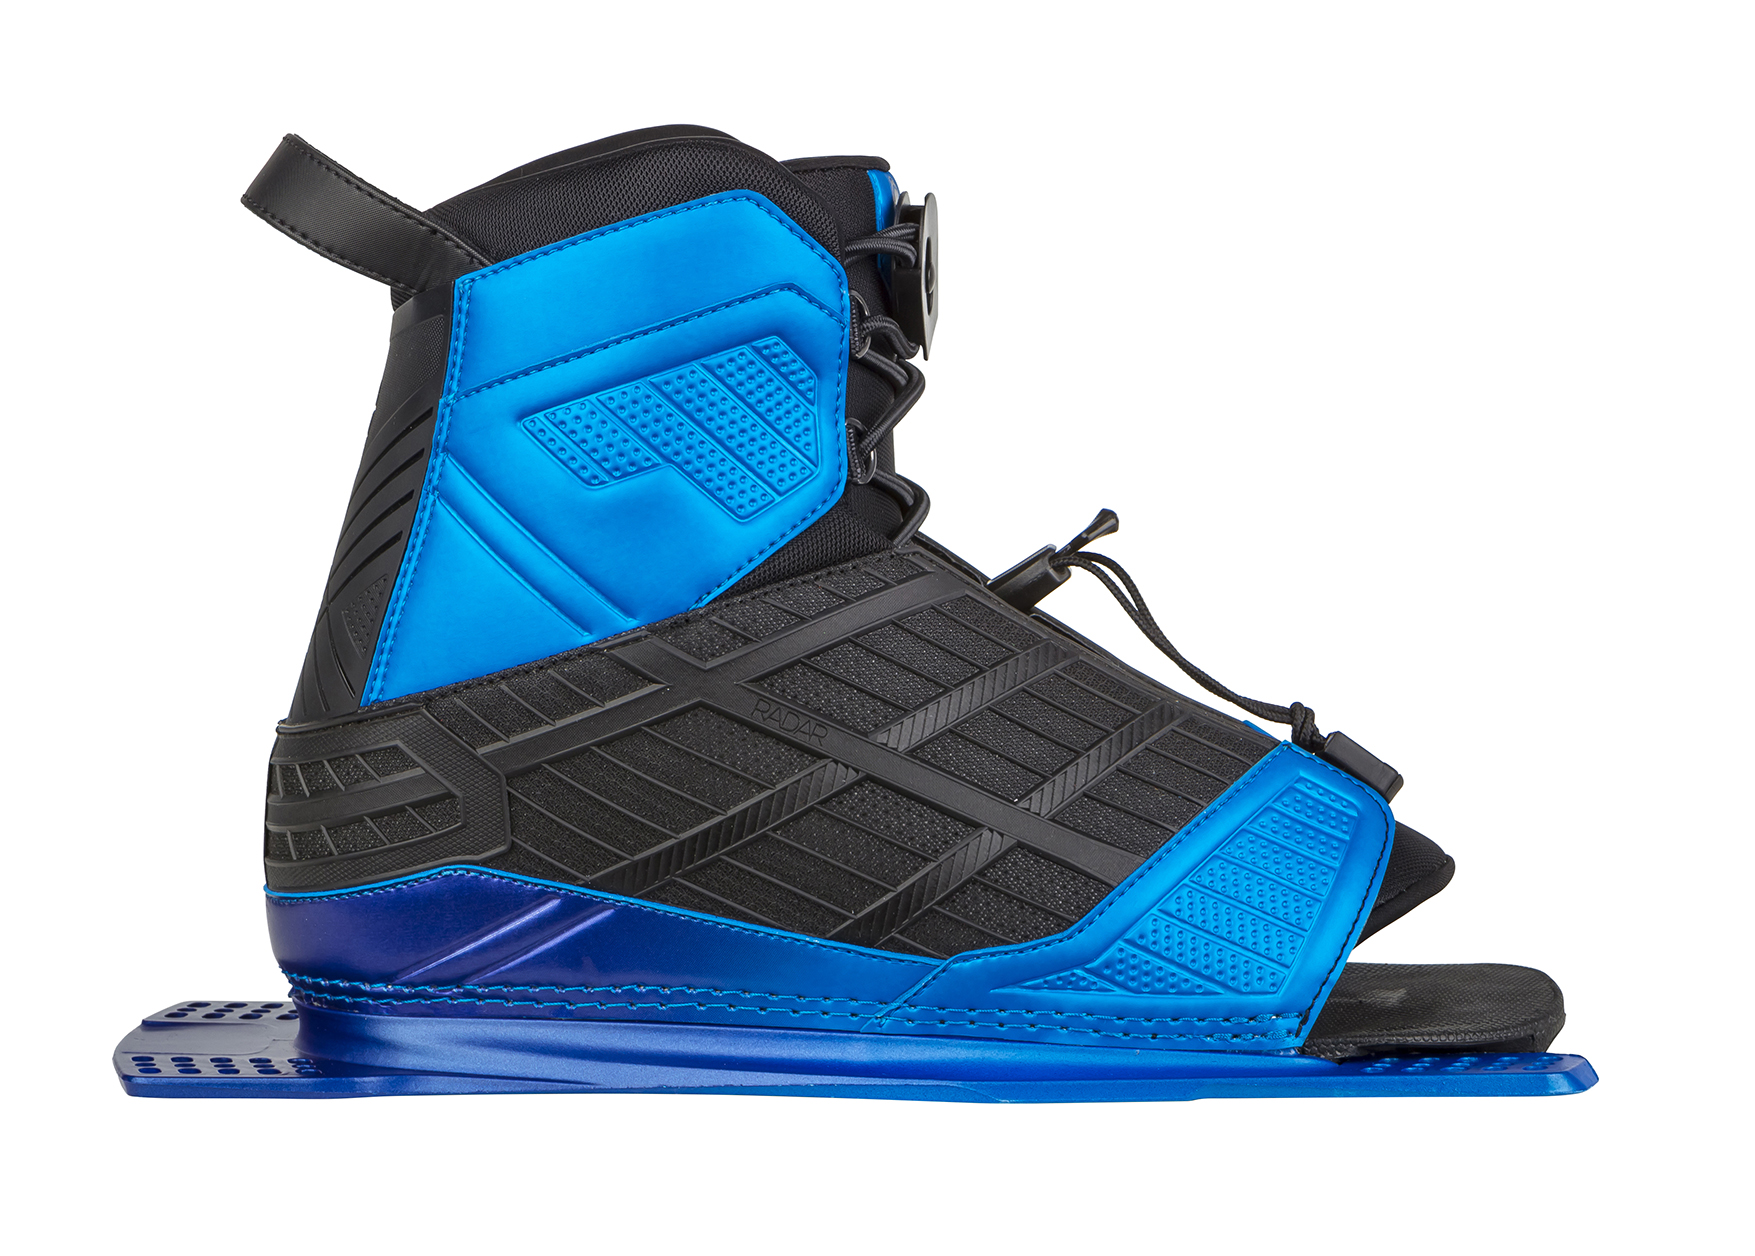 VECTOR BOOT W/REAR FEATHER FRAME - BLUE RADAR 2017